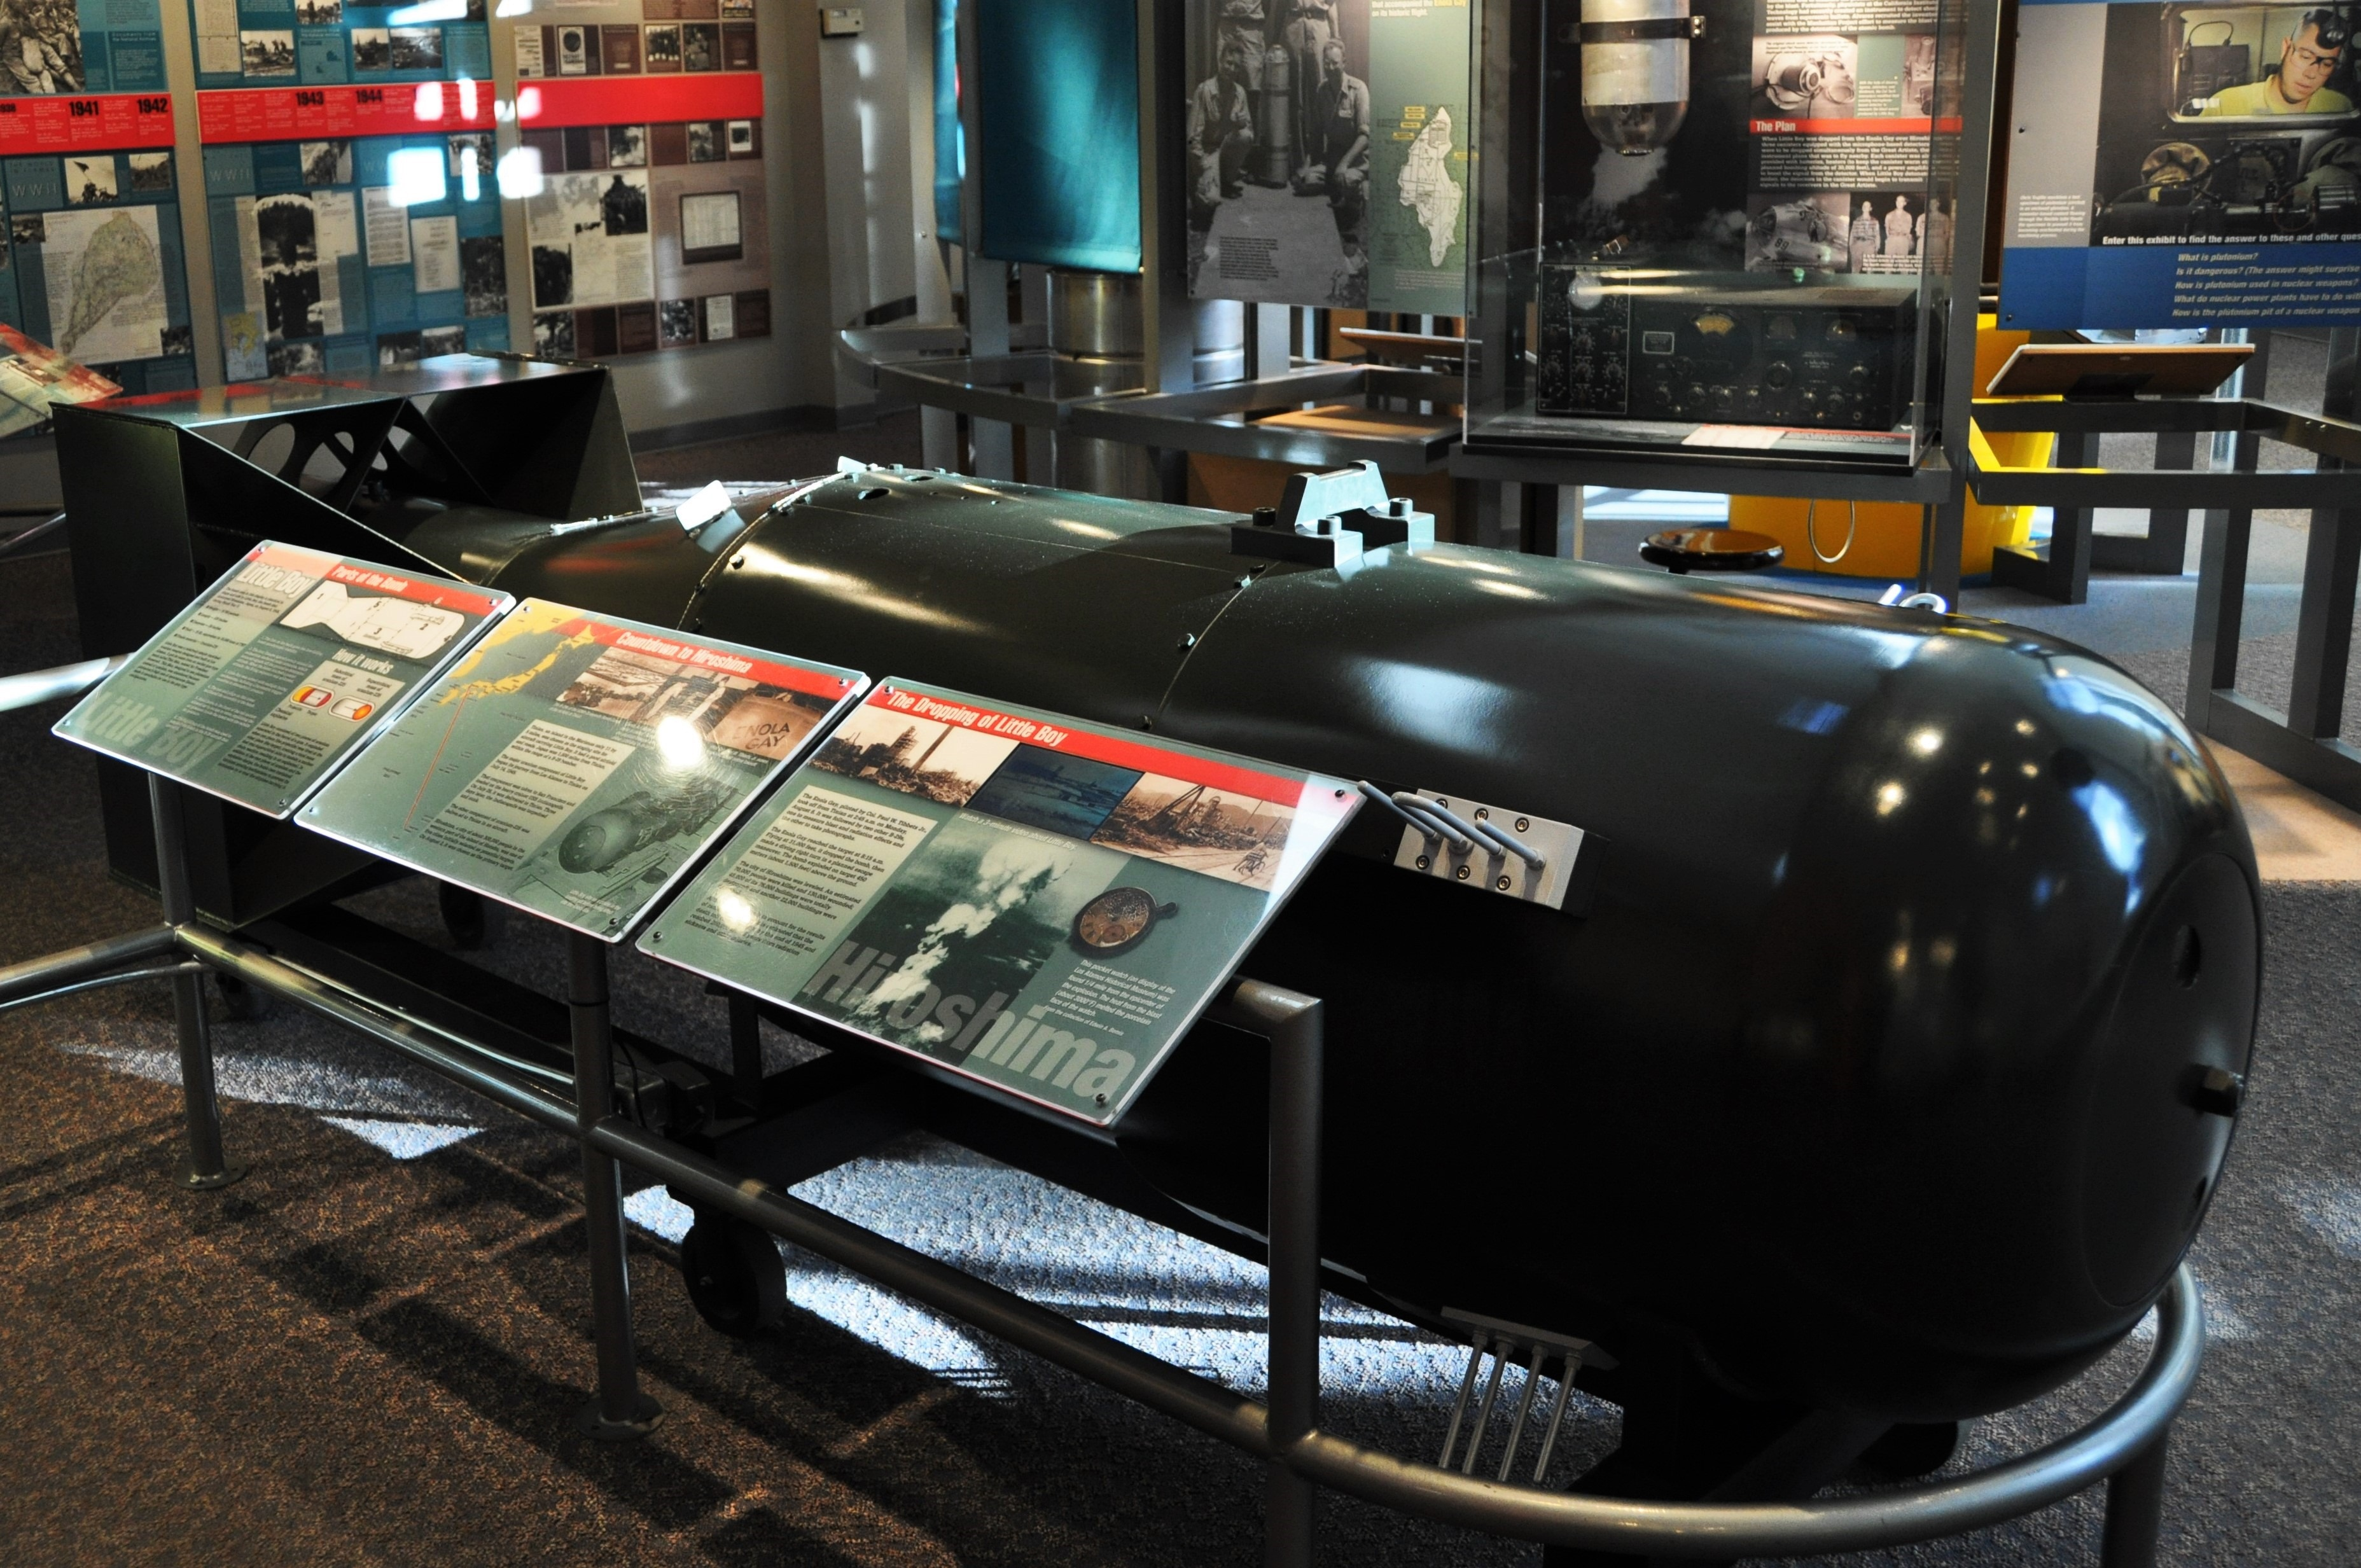 Replica of atom bomb Little Boy dropped on Hiroshima Aug 6 1945 - bruce witzel photo